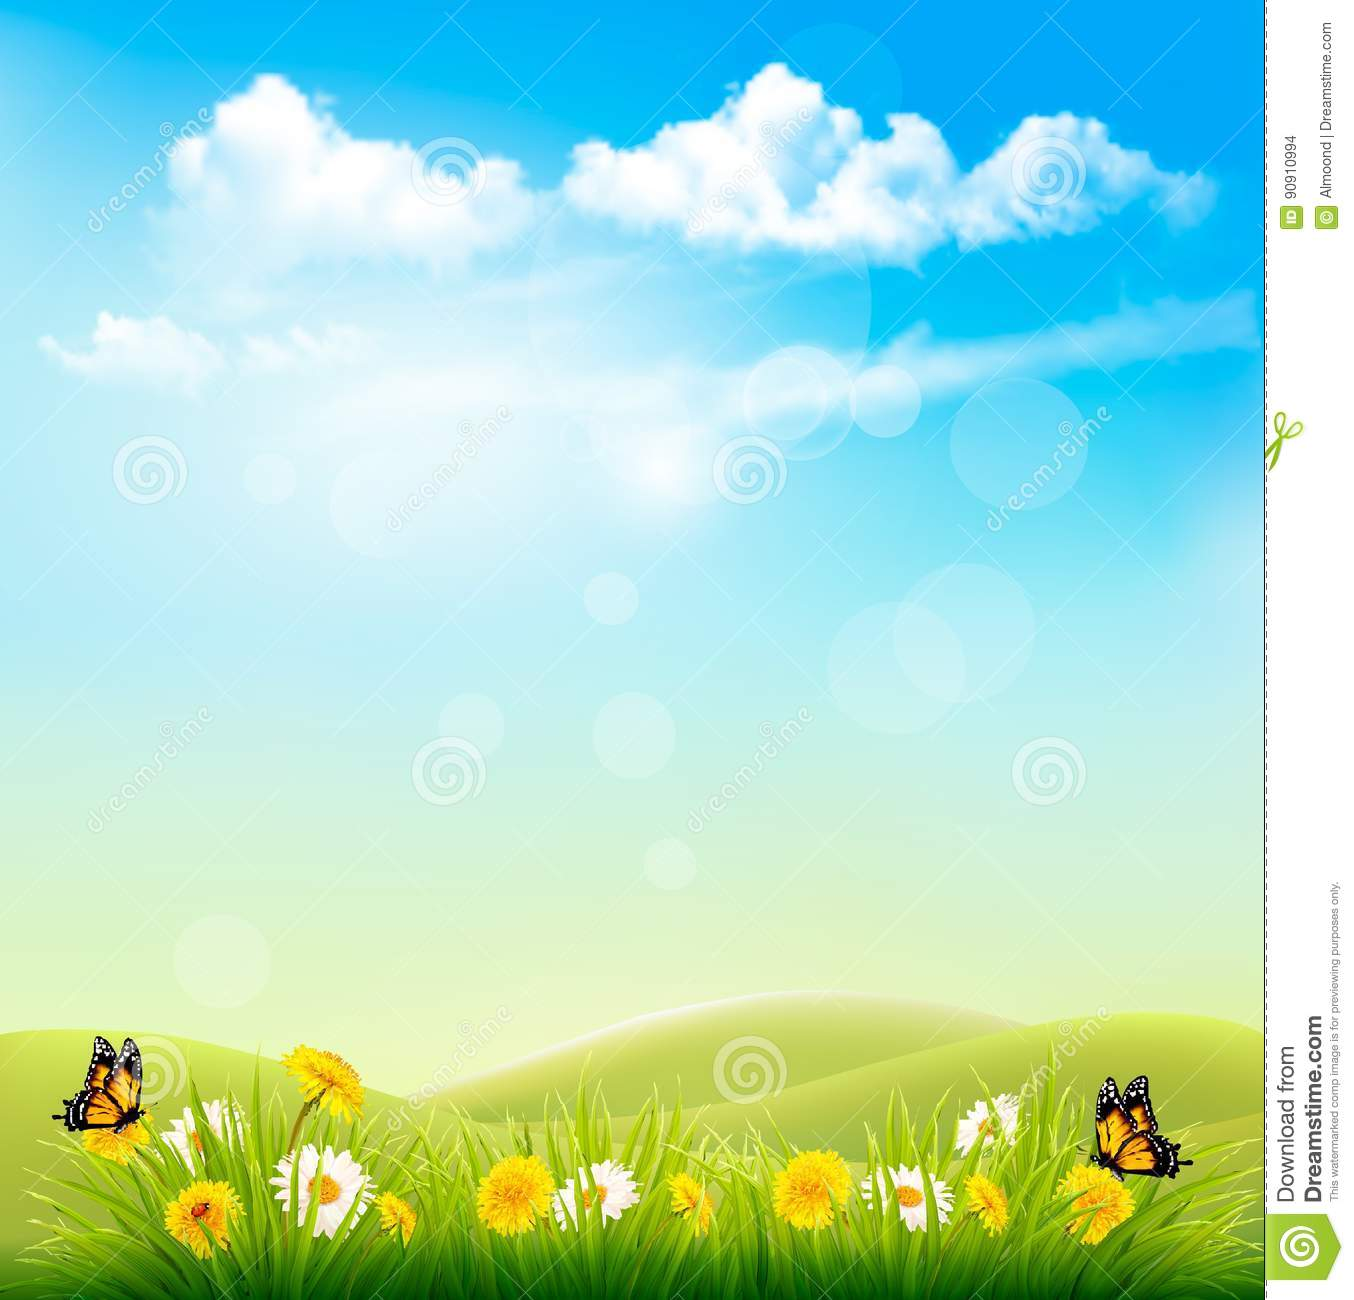 spring nature background with a green grass and blue sky stock